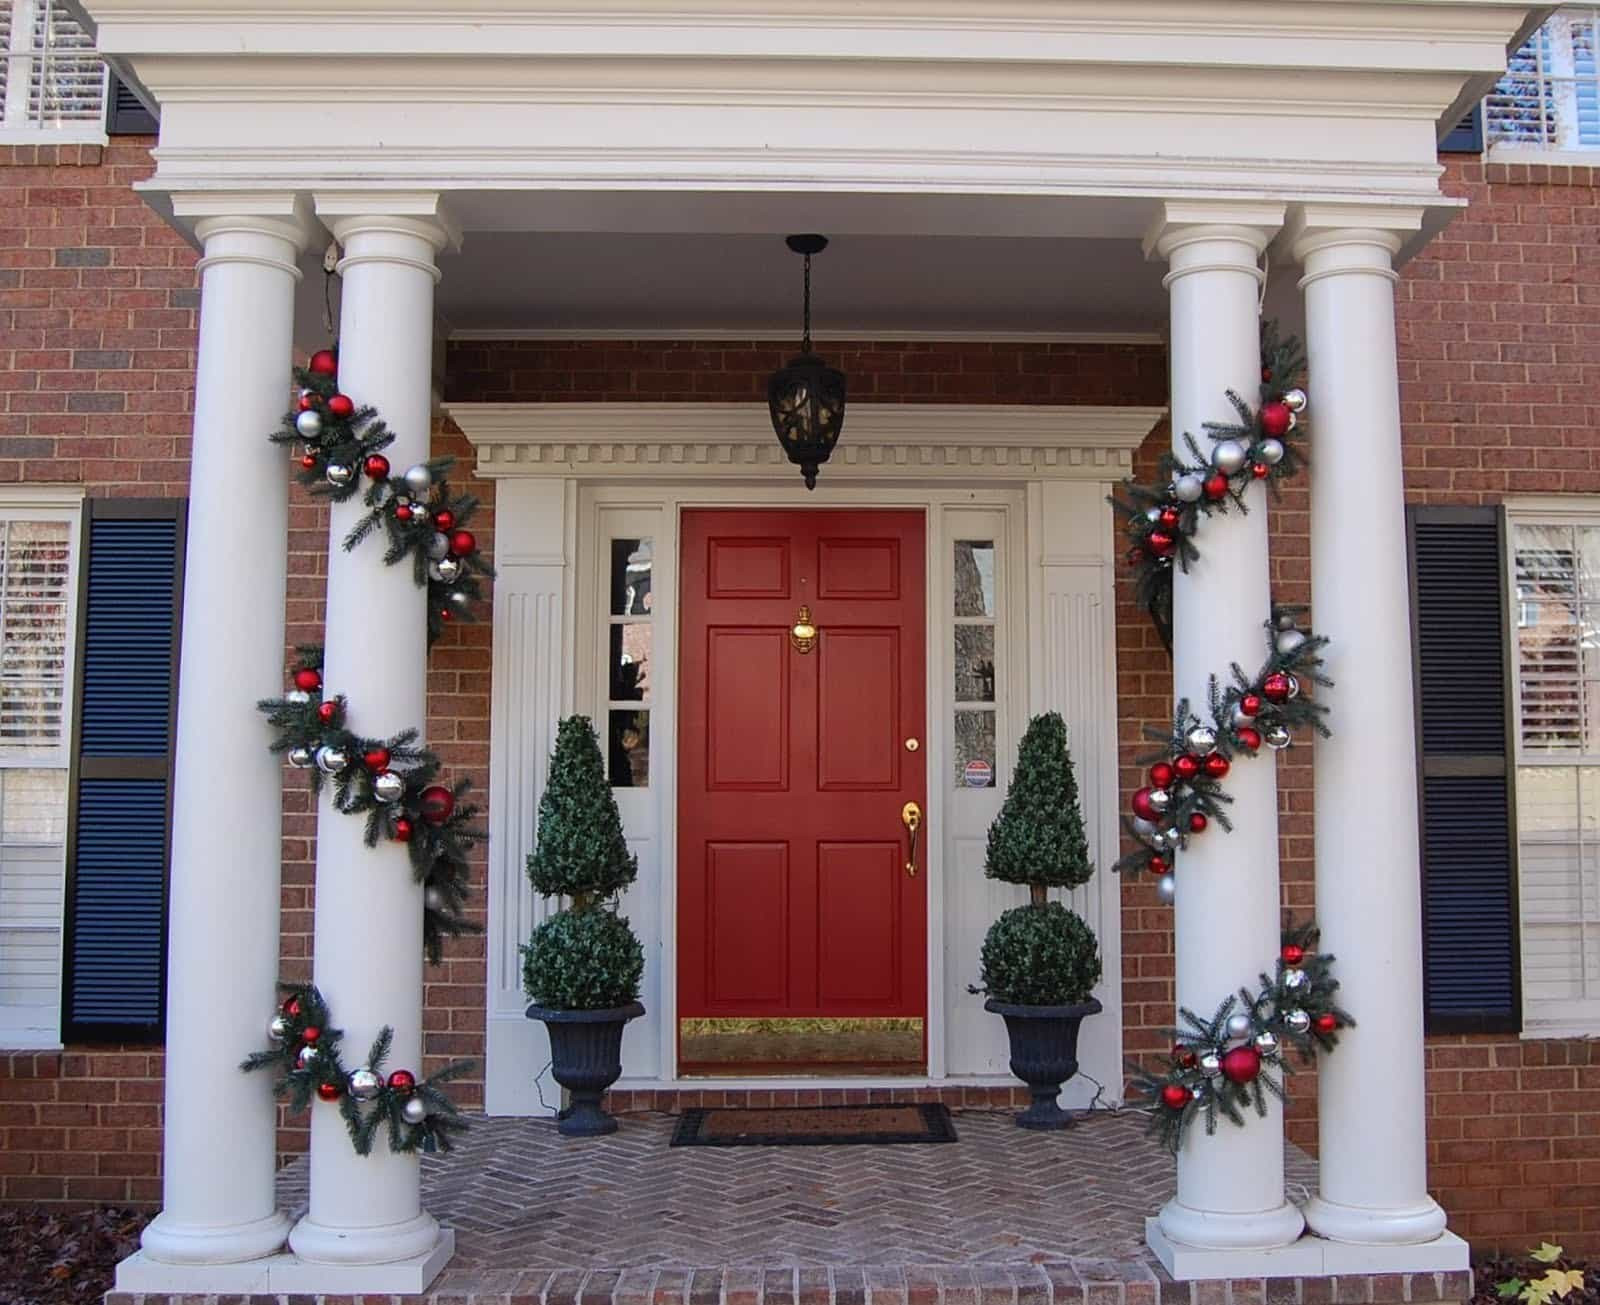 Christmas Decorators Awesome Christmas Decorating Ideas for Your Porch Of Christmas Decorators Best Of Christmas Decoration S